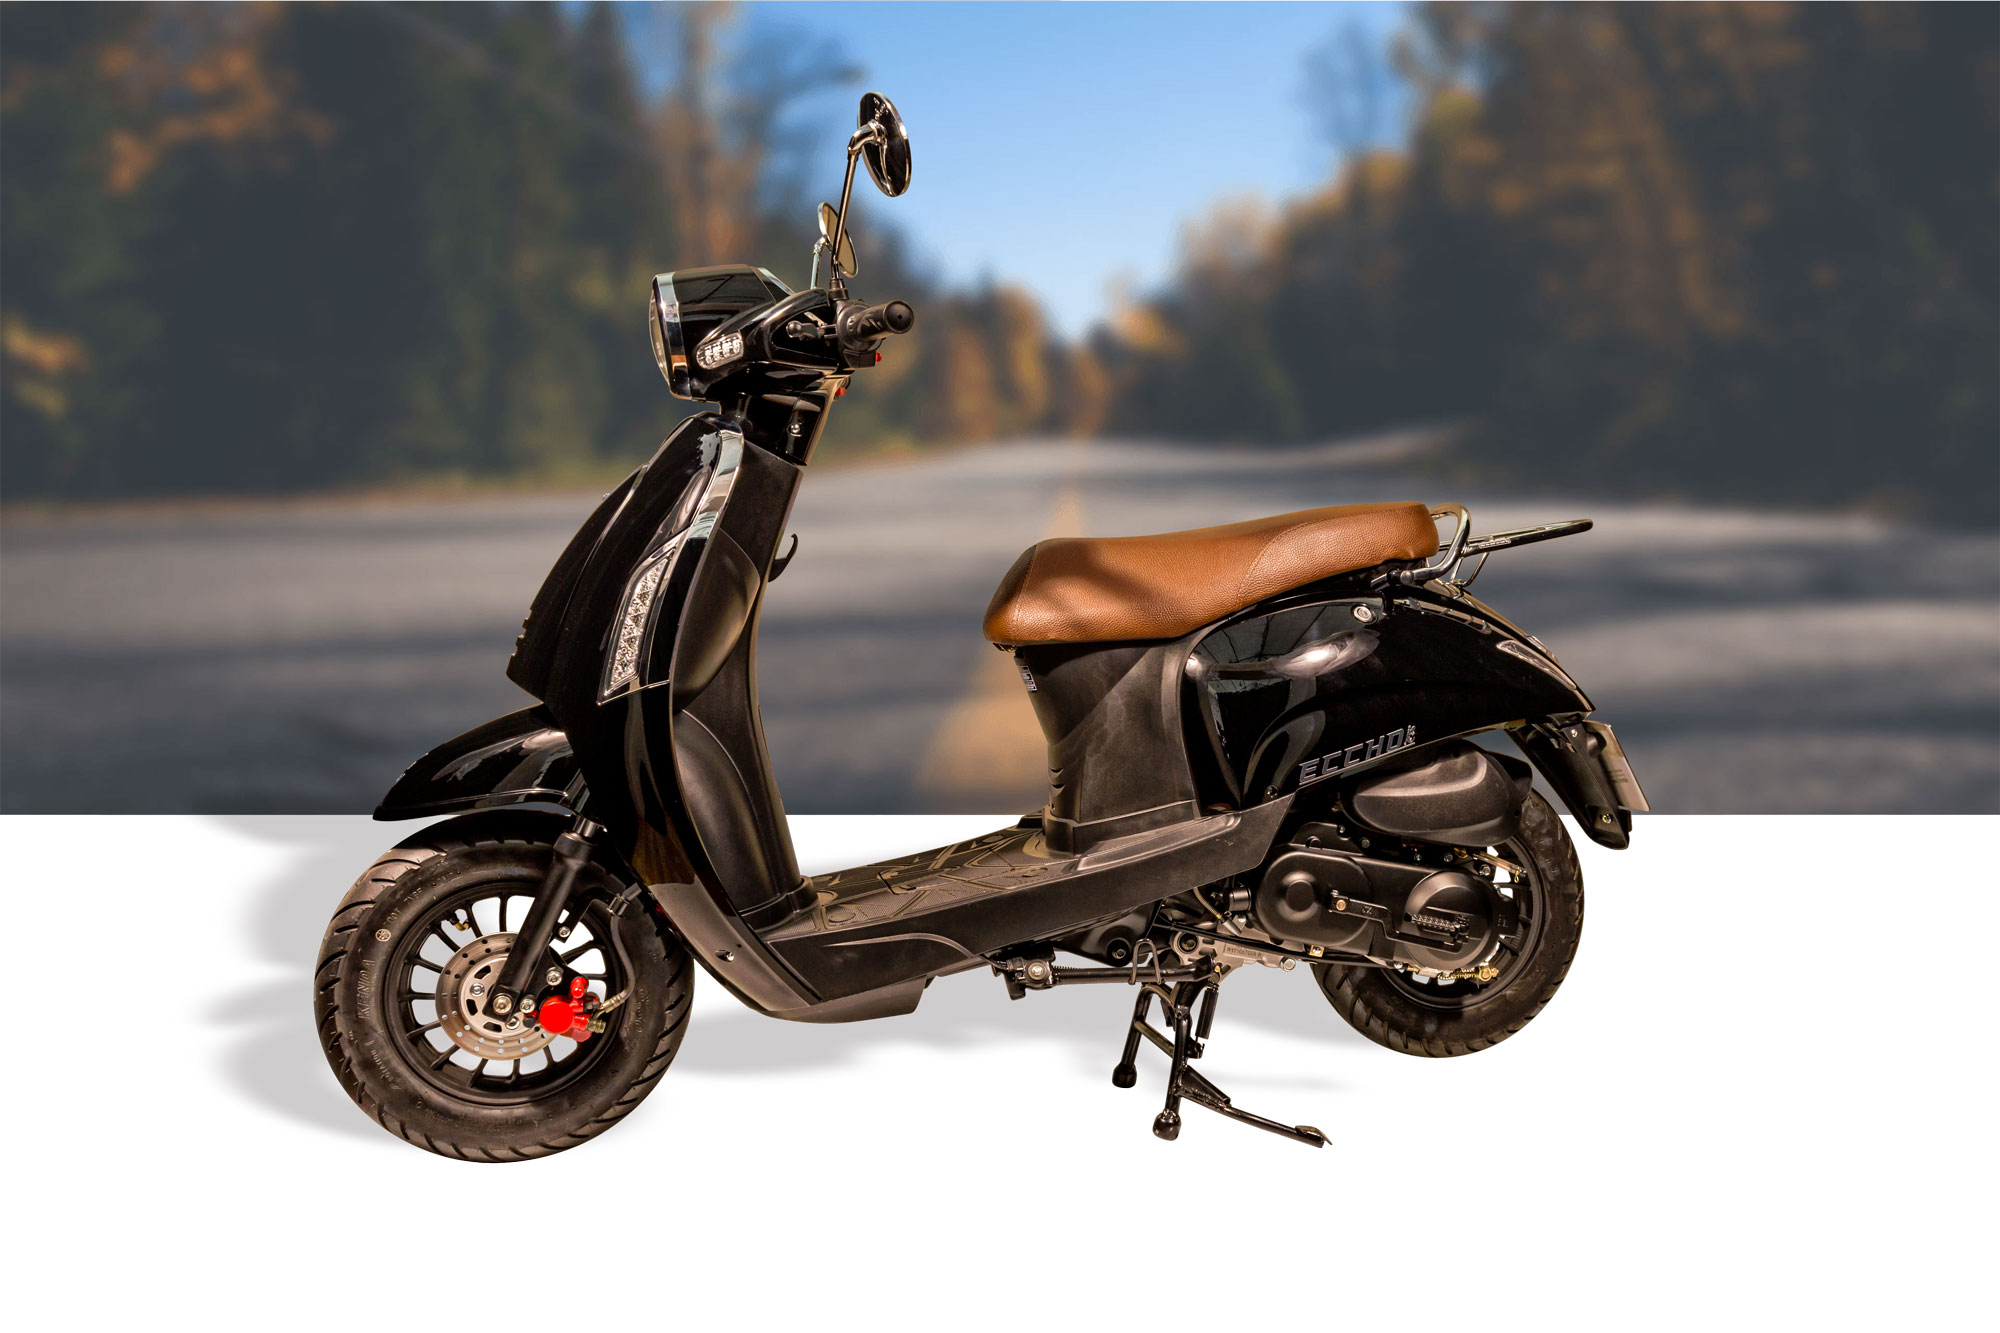 SCOOTER-50-ECCHO-NEW-CITY-EFI-07